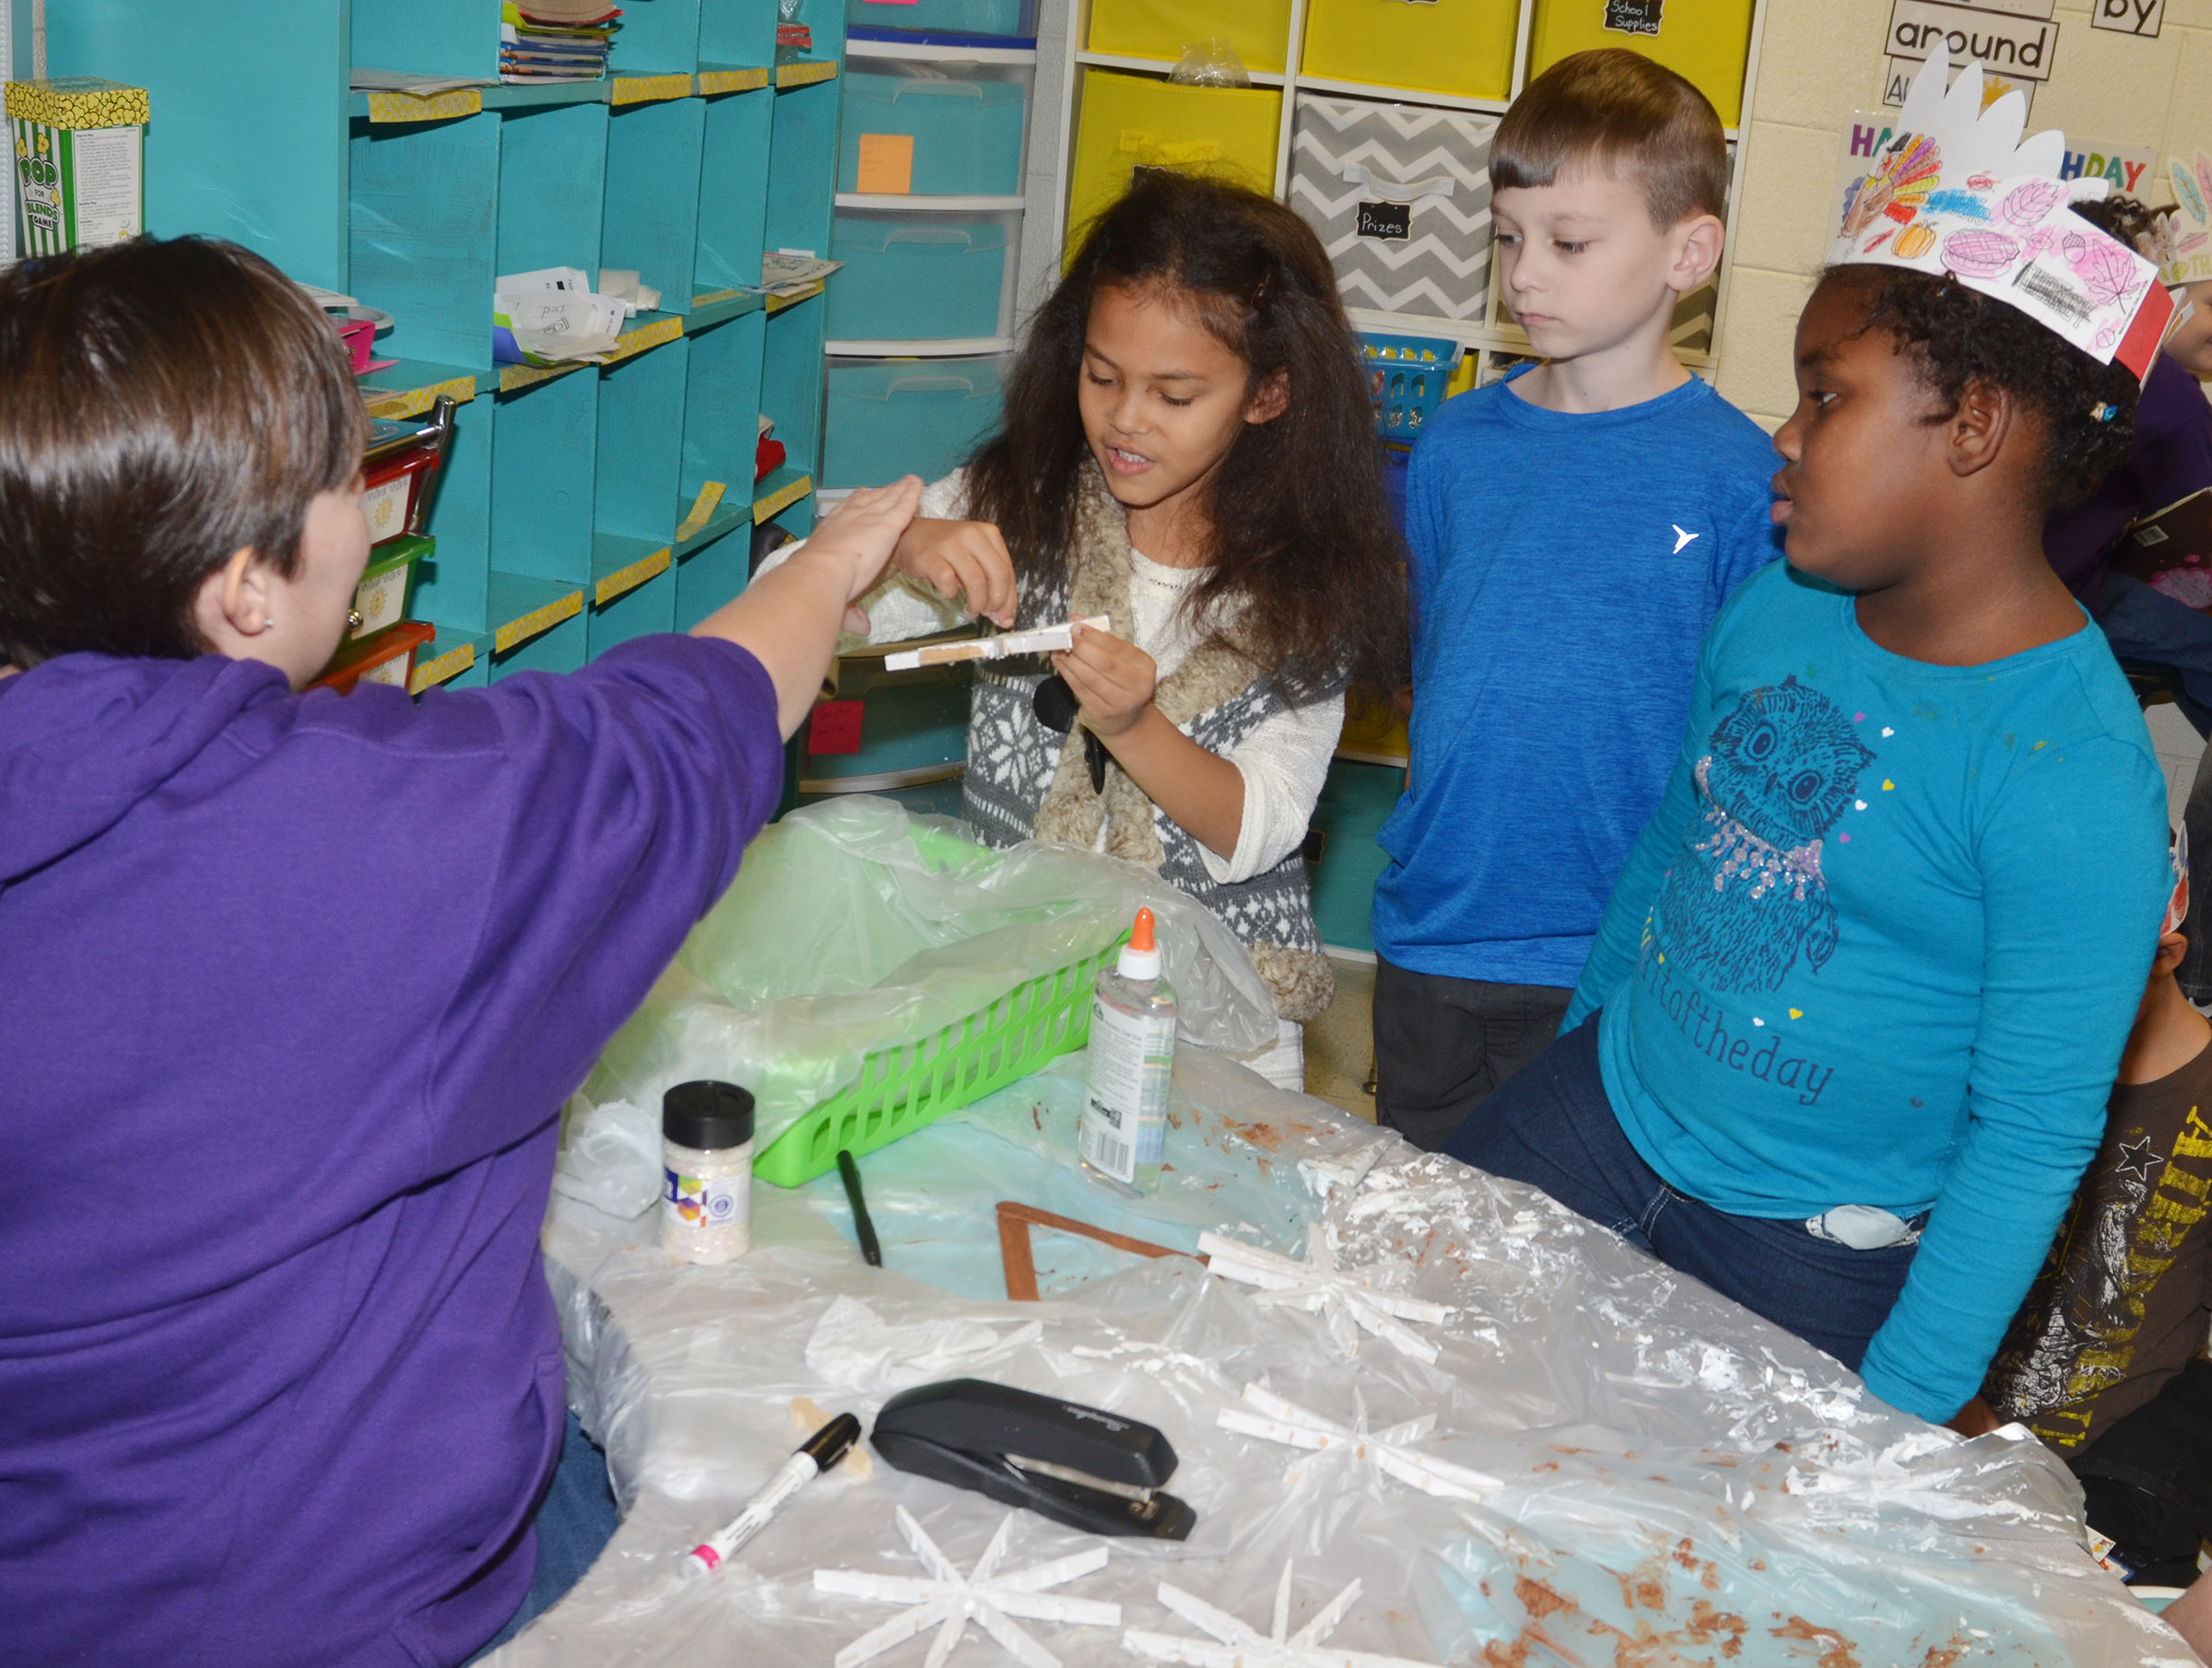 CES first-grader Marlee Dickens adds glitter to her snowflake ornament, with some help from her teacher Amanda Barnett. At right, first-graders Parker Newton and Destinee Henry-Turner wait their turn.